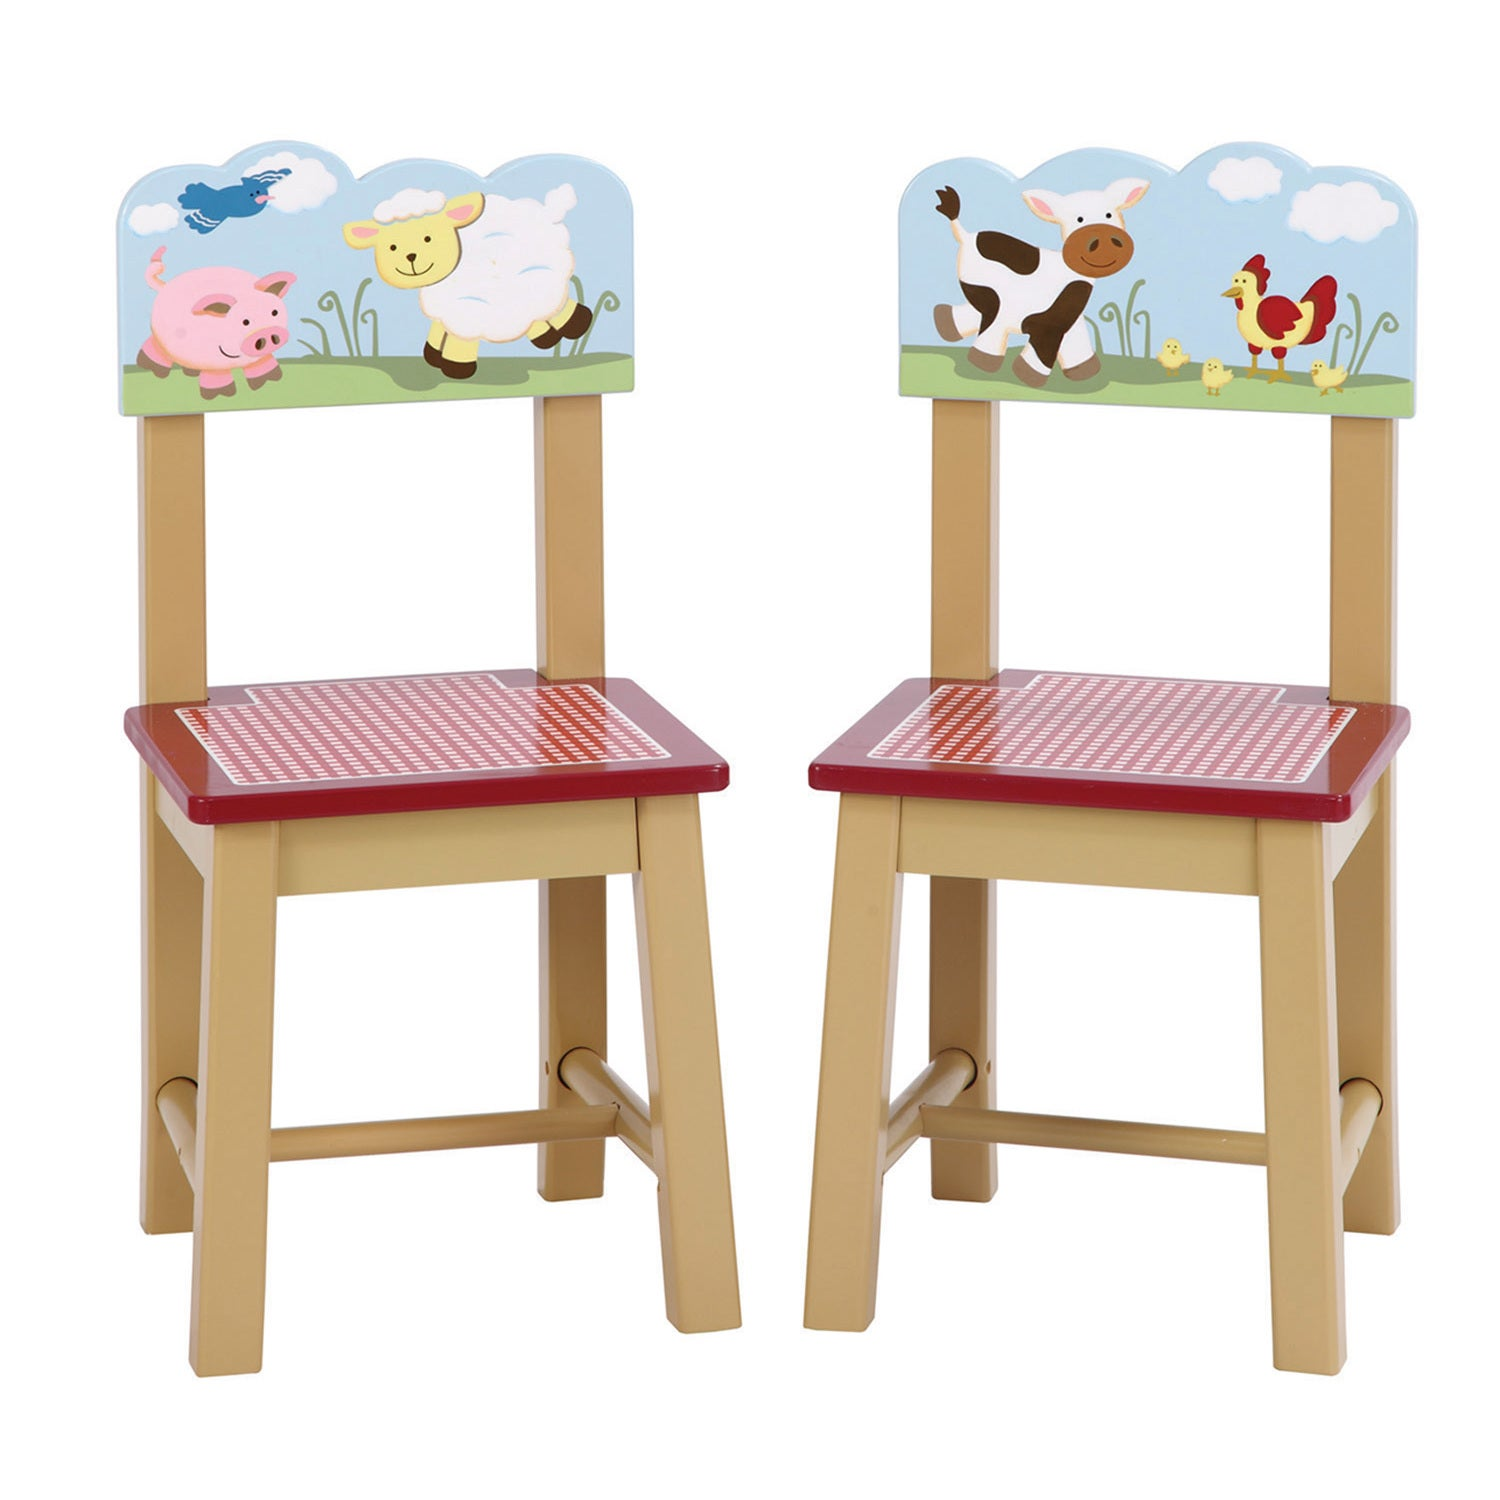 4bd5301194dd Shop Farm Friends Extra Chairs (Set of 2) - Free Shipping Today - Overstock  - 9104037